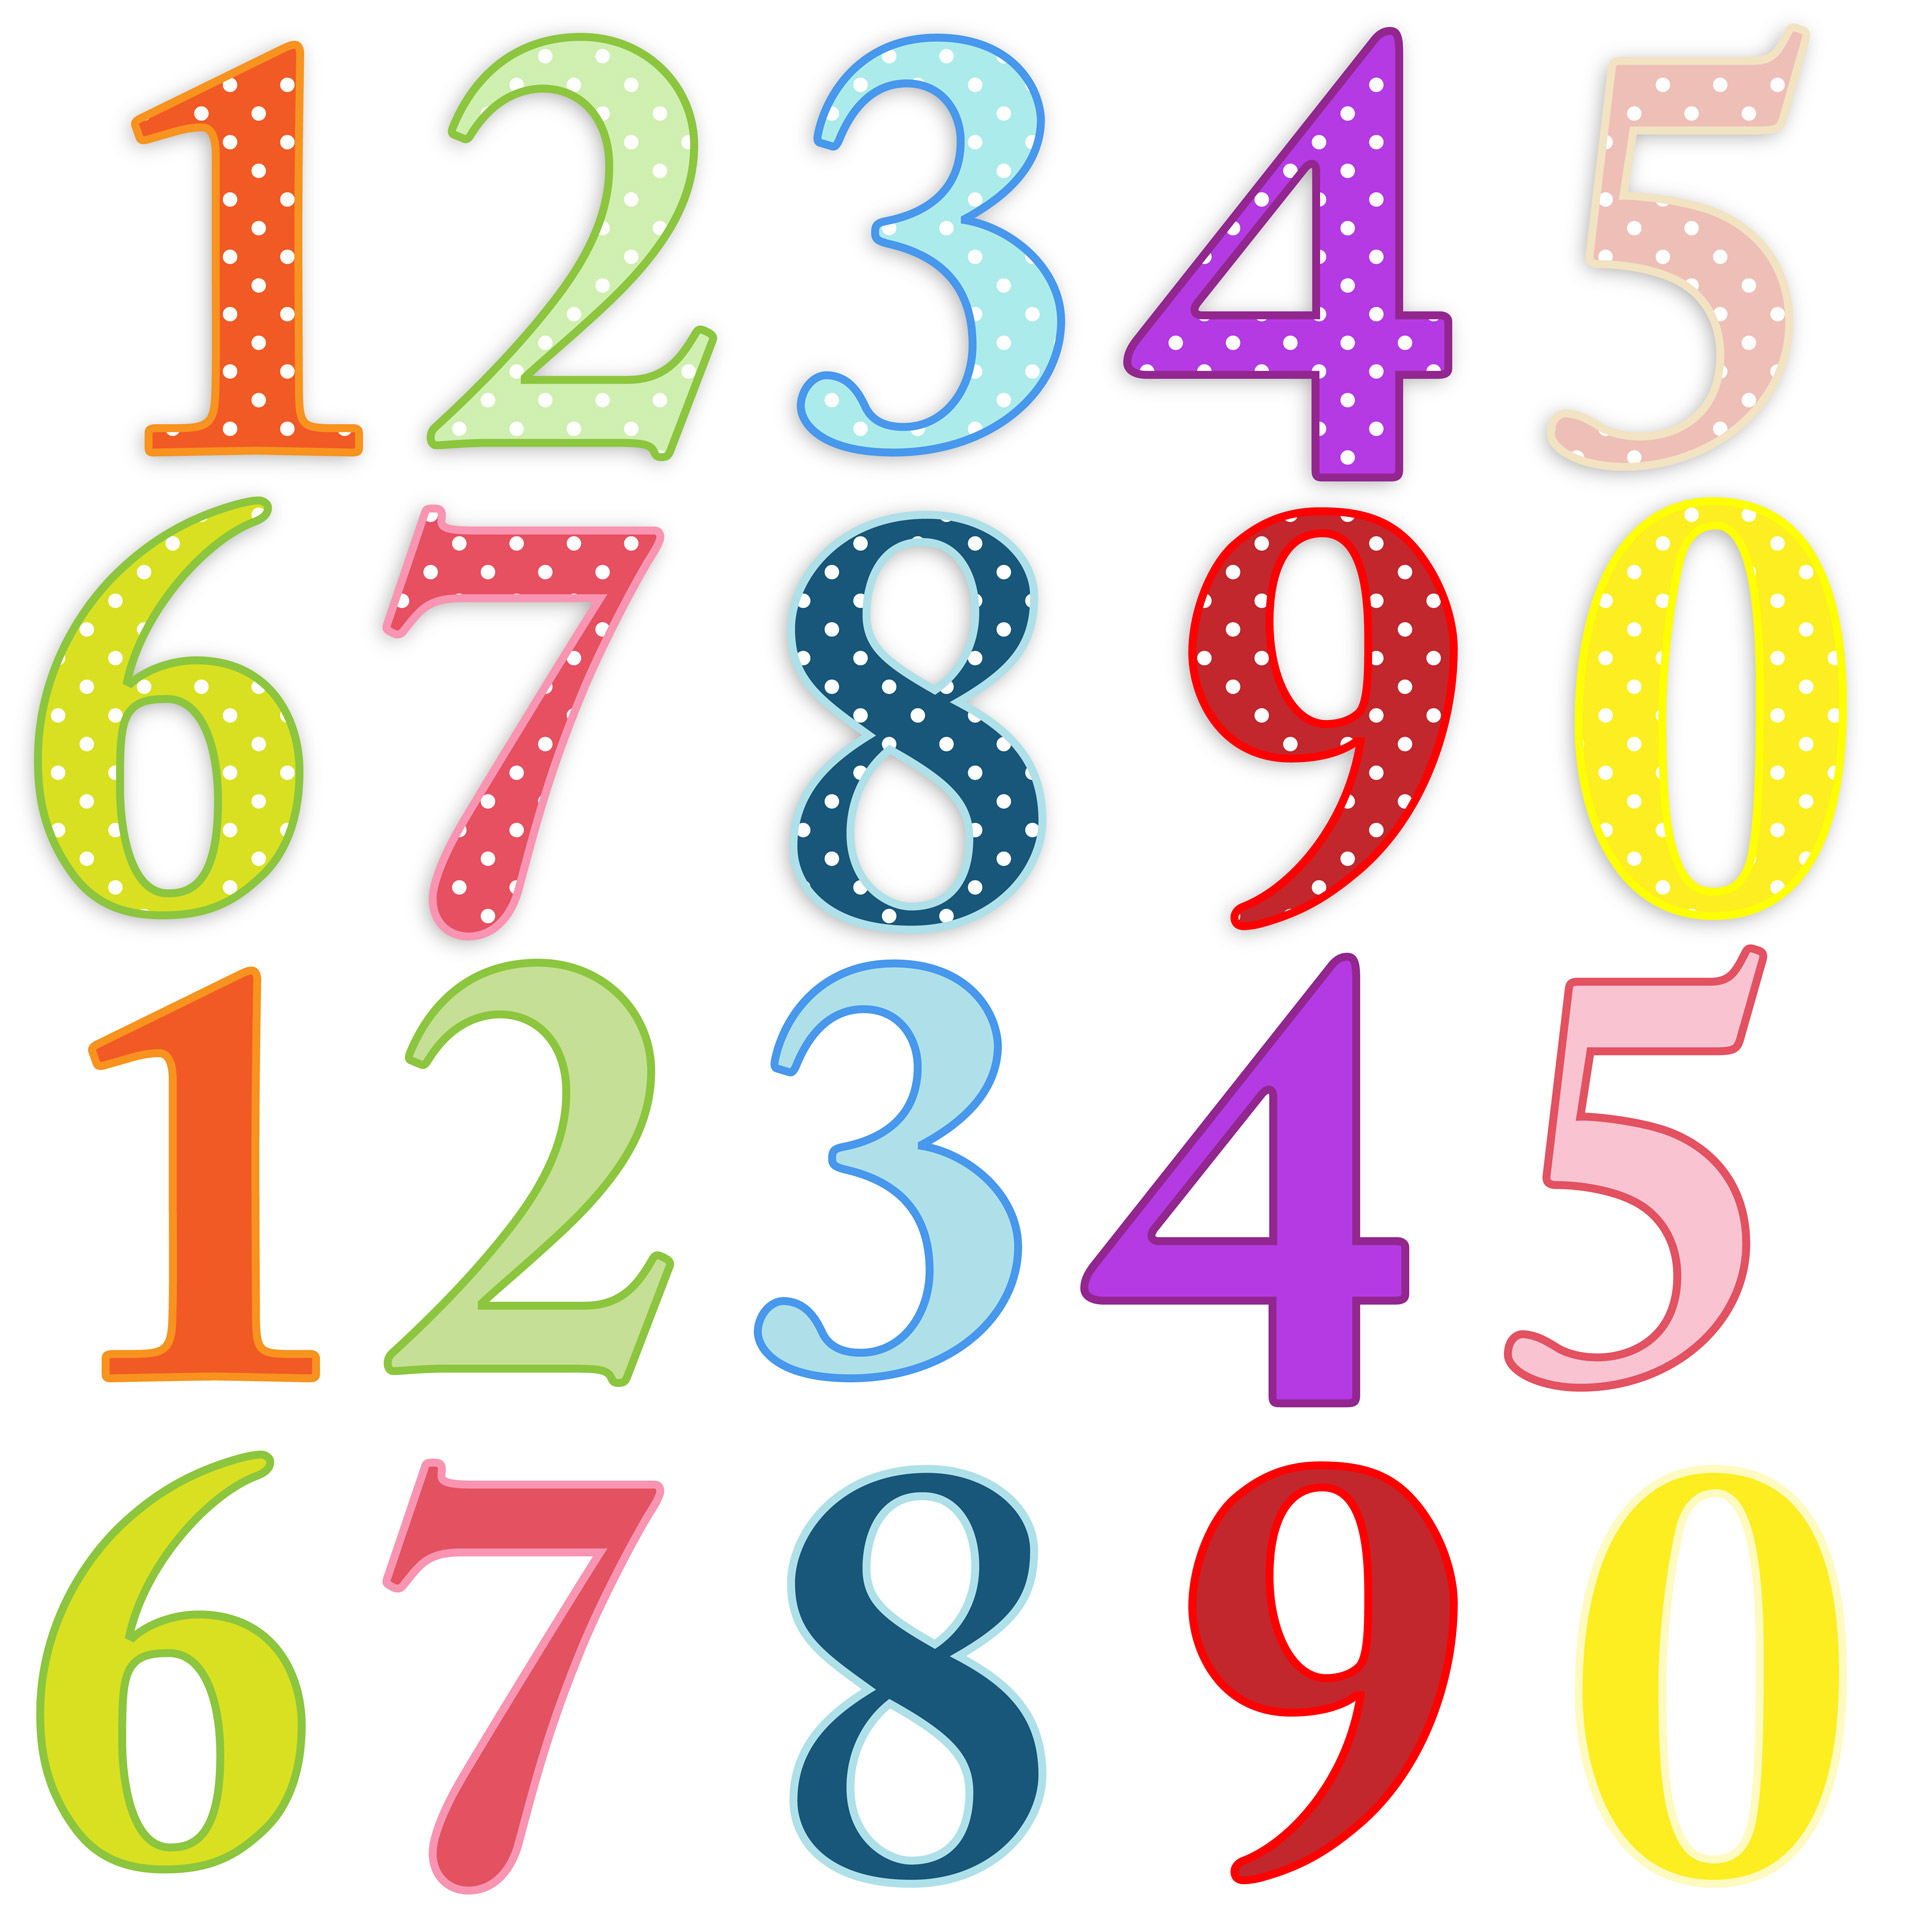 Numbers Colorful Clip Art Free Stock Photo Public Domain Pictures